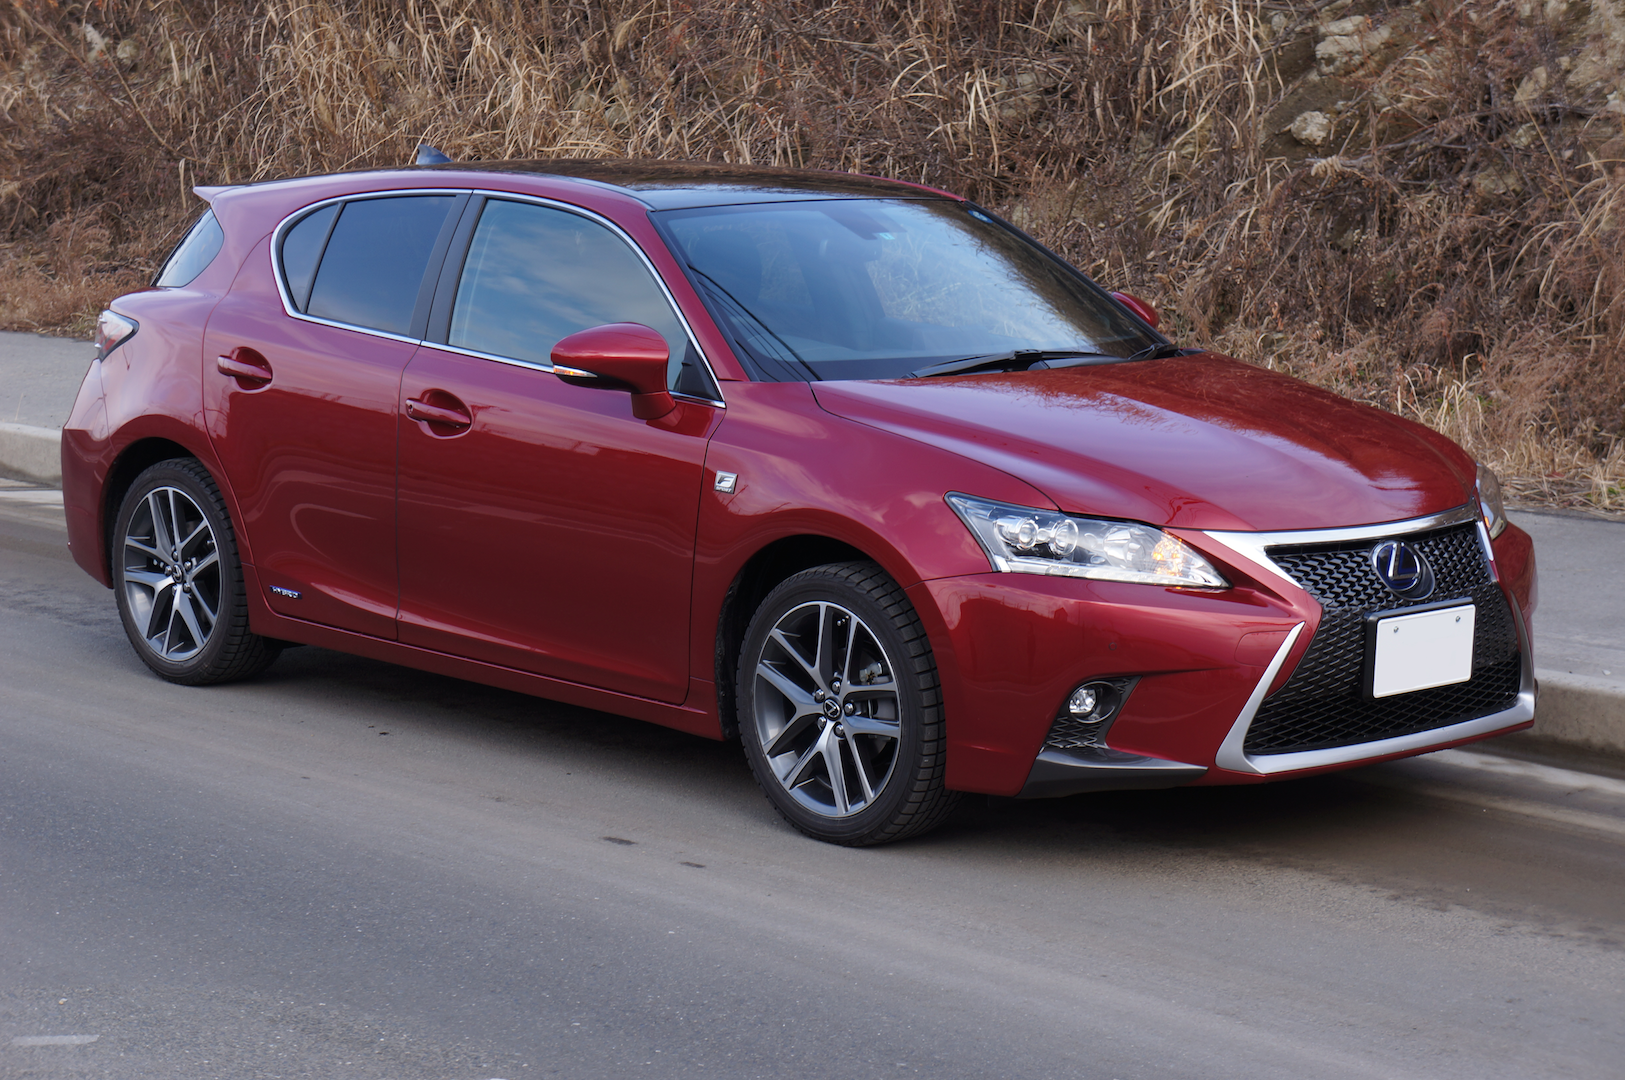 file lexus ct200h fsport 2014 front wikimedia commons. Black Bedroom Furniture Sets. Home Design Ideas